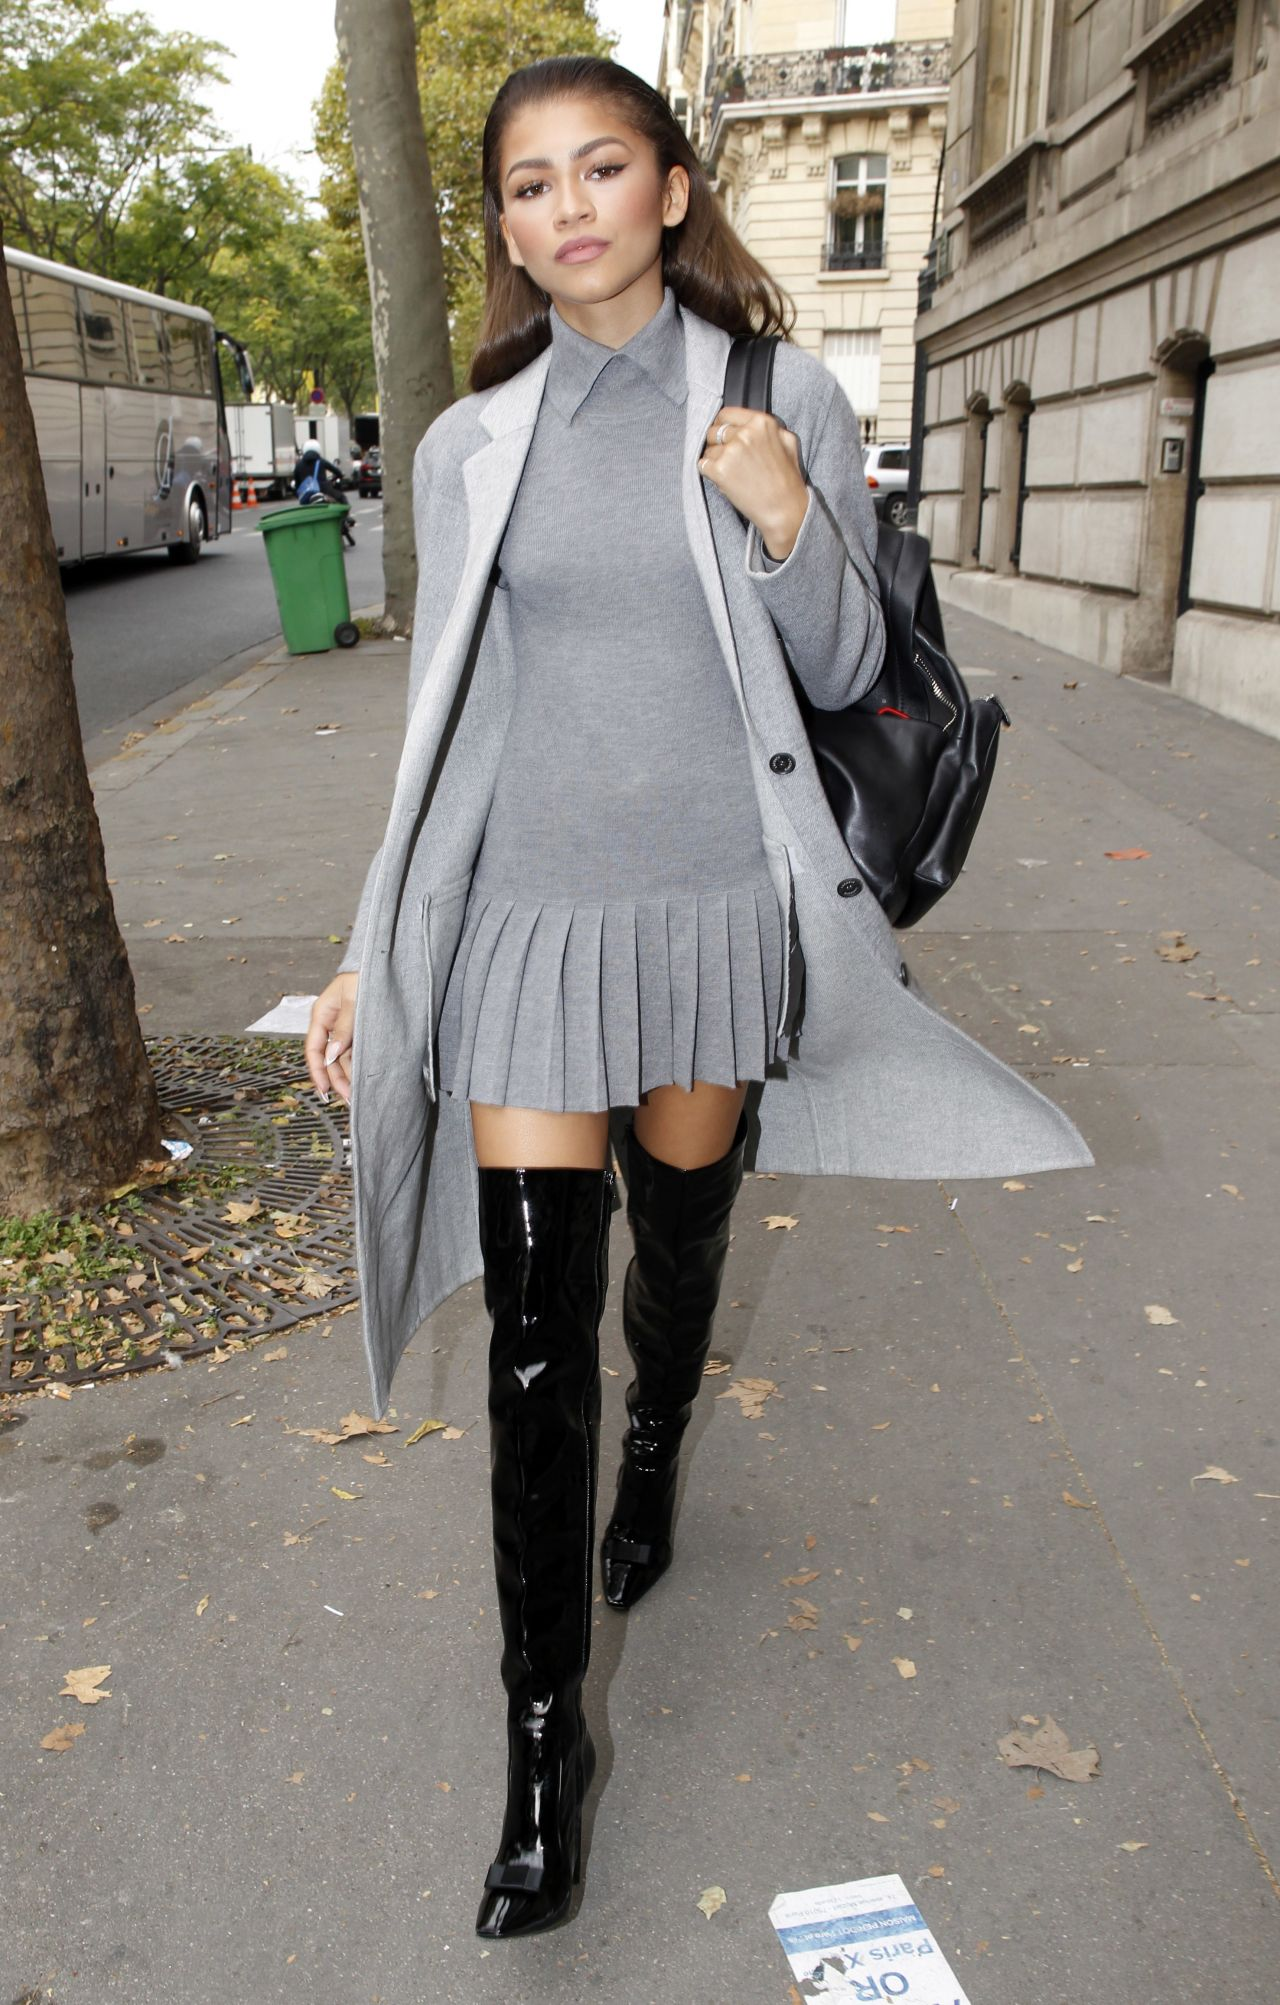 zendaya-street-fashion-out-in-paris-october-2015_9